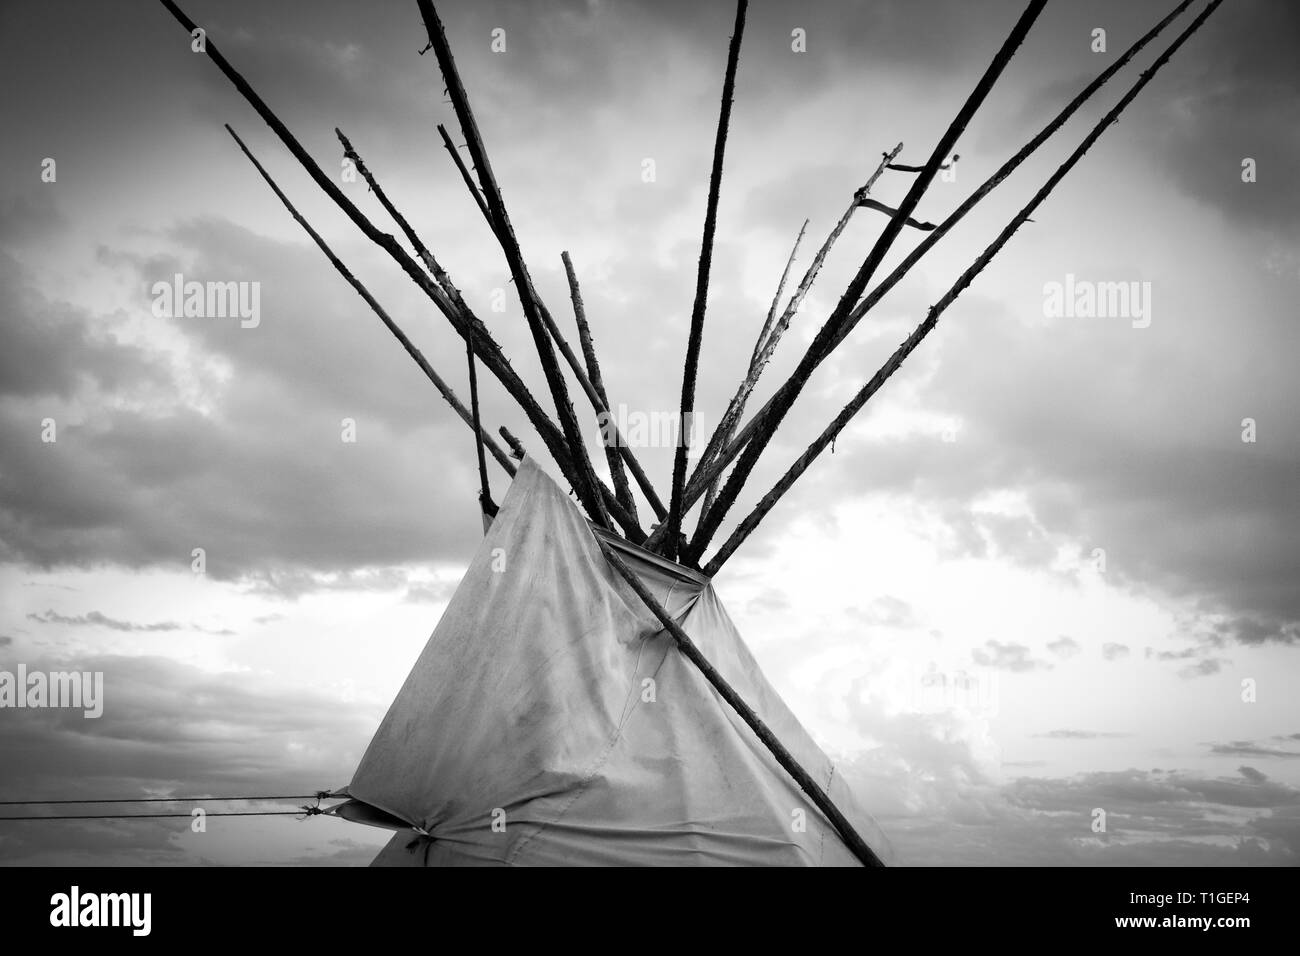 A cropped close up black and white view of the top of a tipi with dramatic sky in the Western plains at sunset in the USA - Stock Image